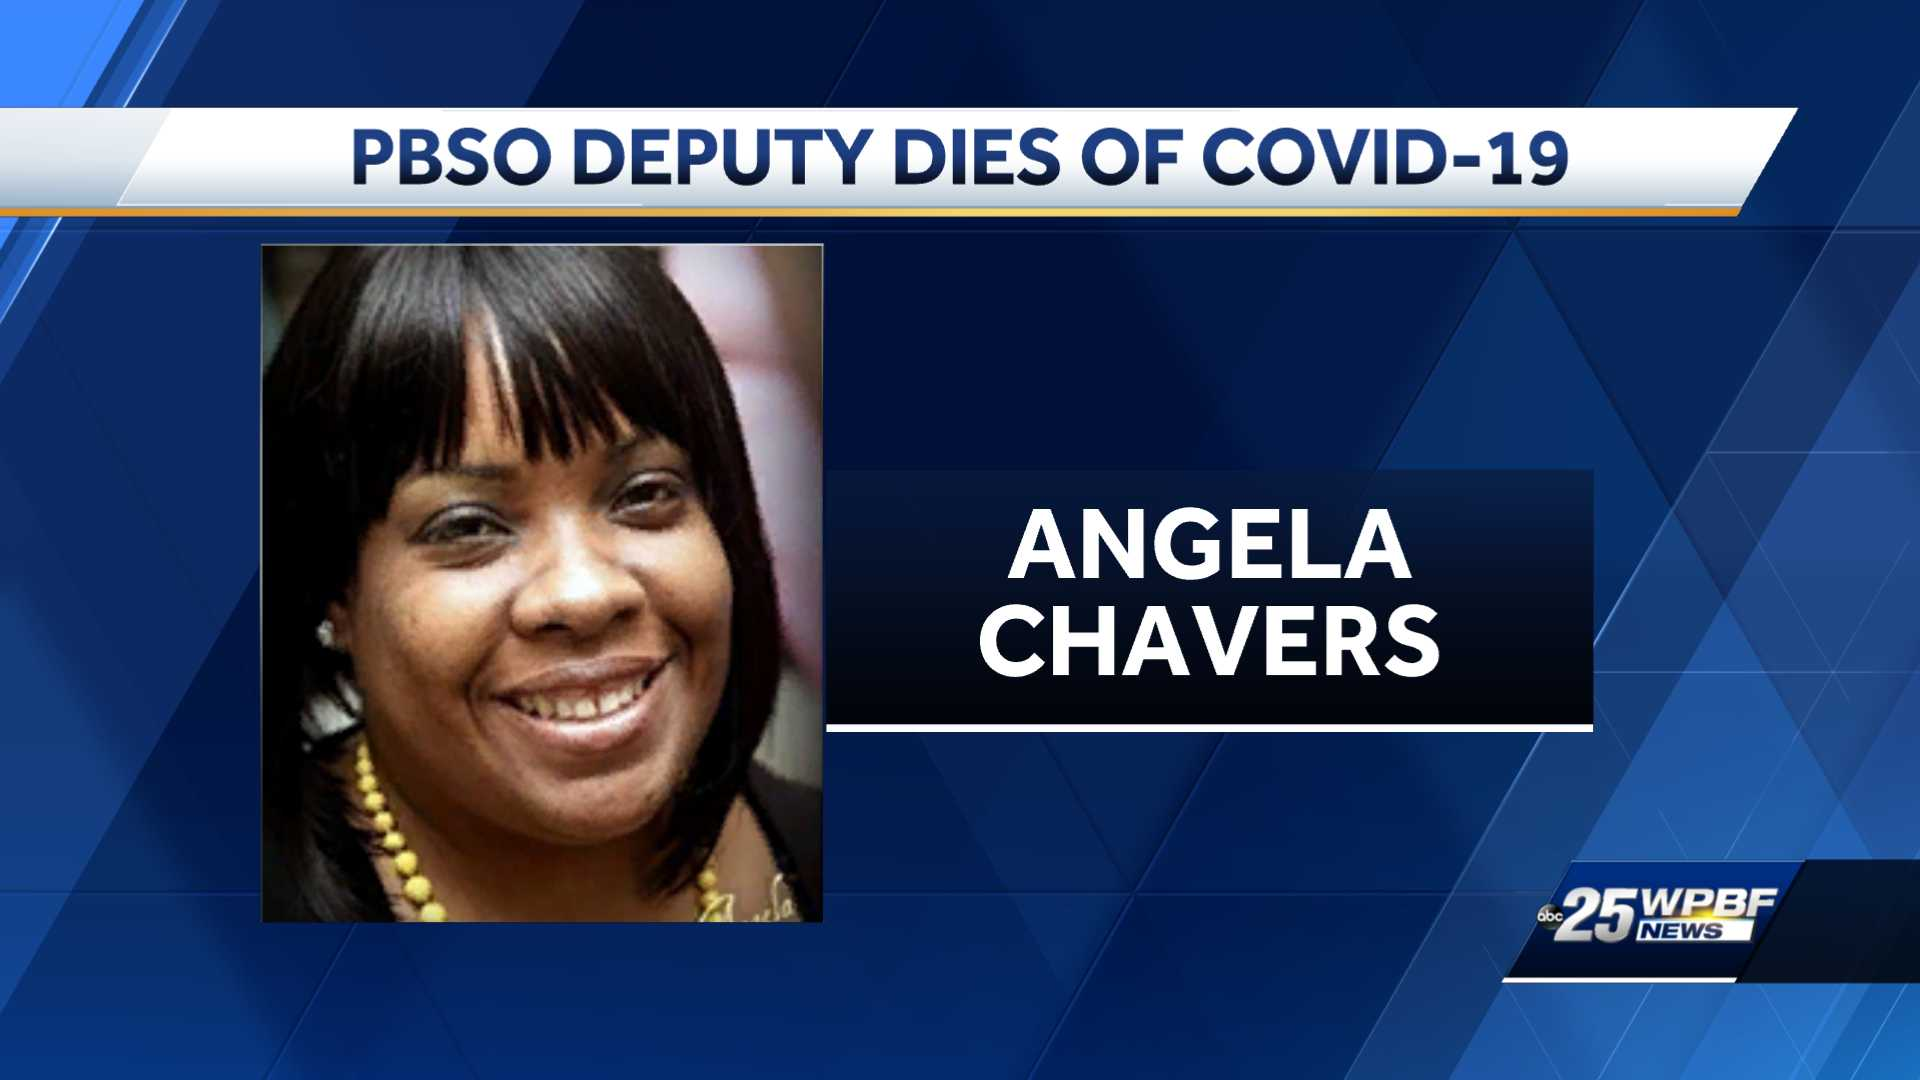 Palm Beach County Sheriff's Office deputy dies from COVID-19